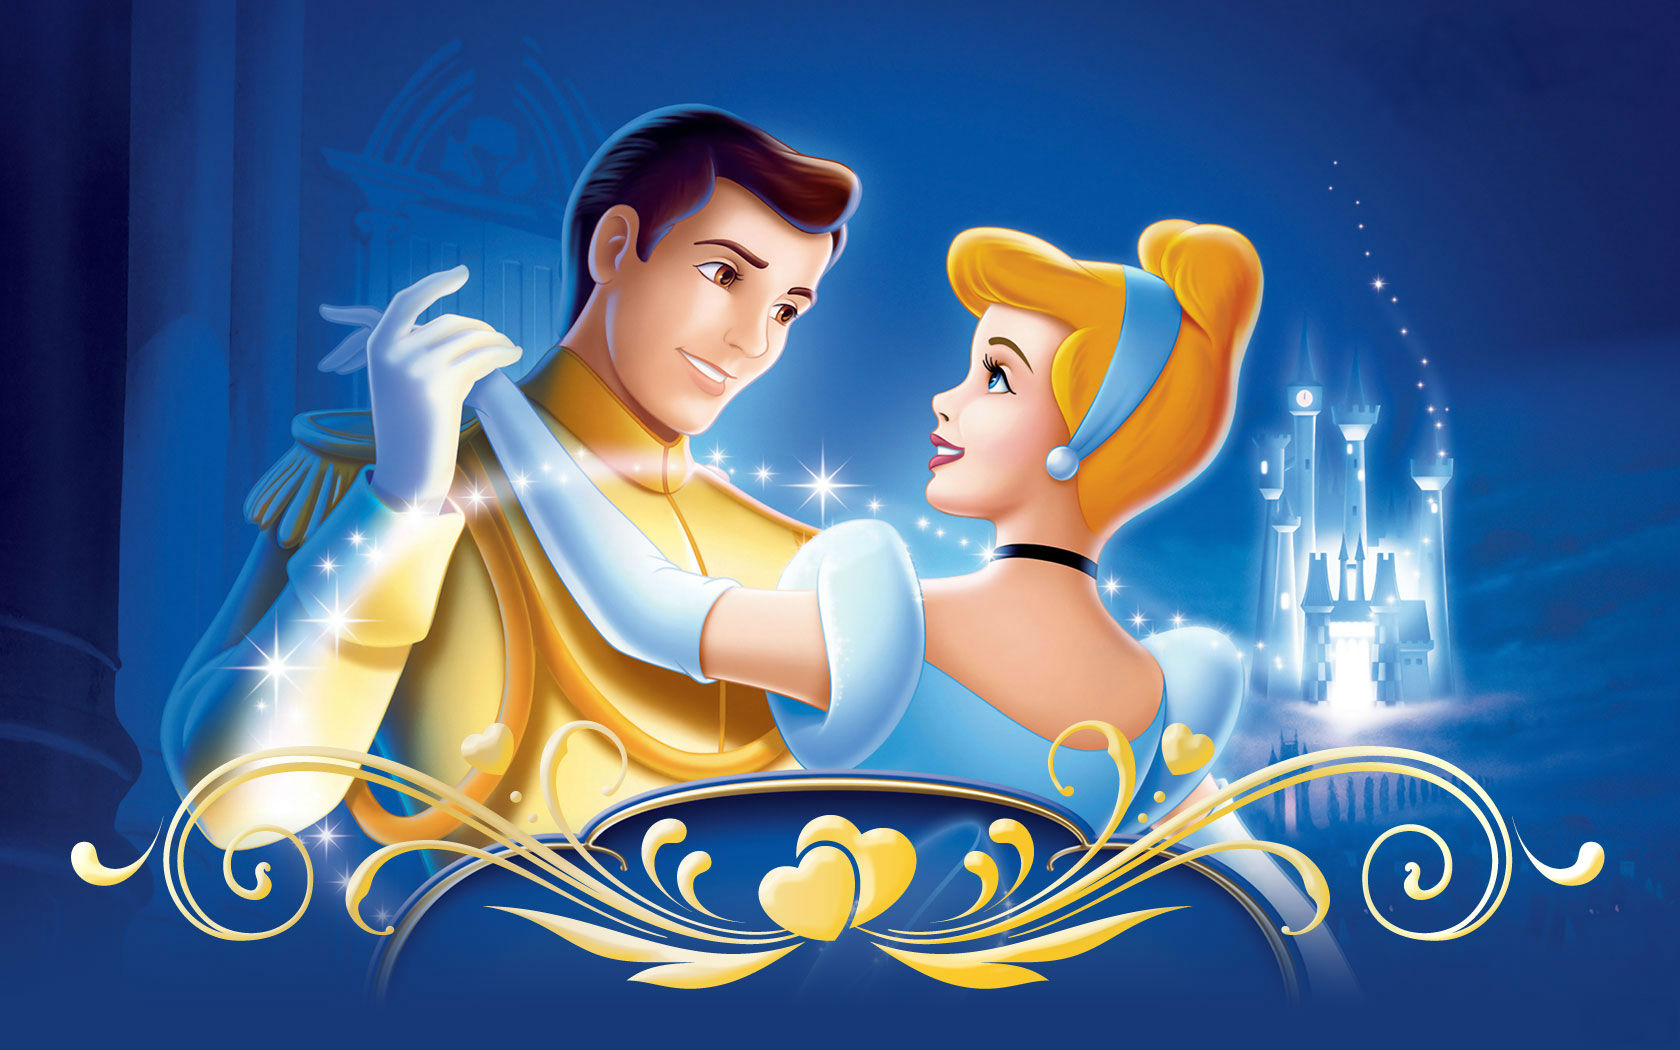 Cinderella wallpaper 15963 1680x1050 px hdwallsource cinderella wallpaper 15963 thecheapjerseys Image collections